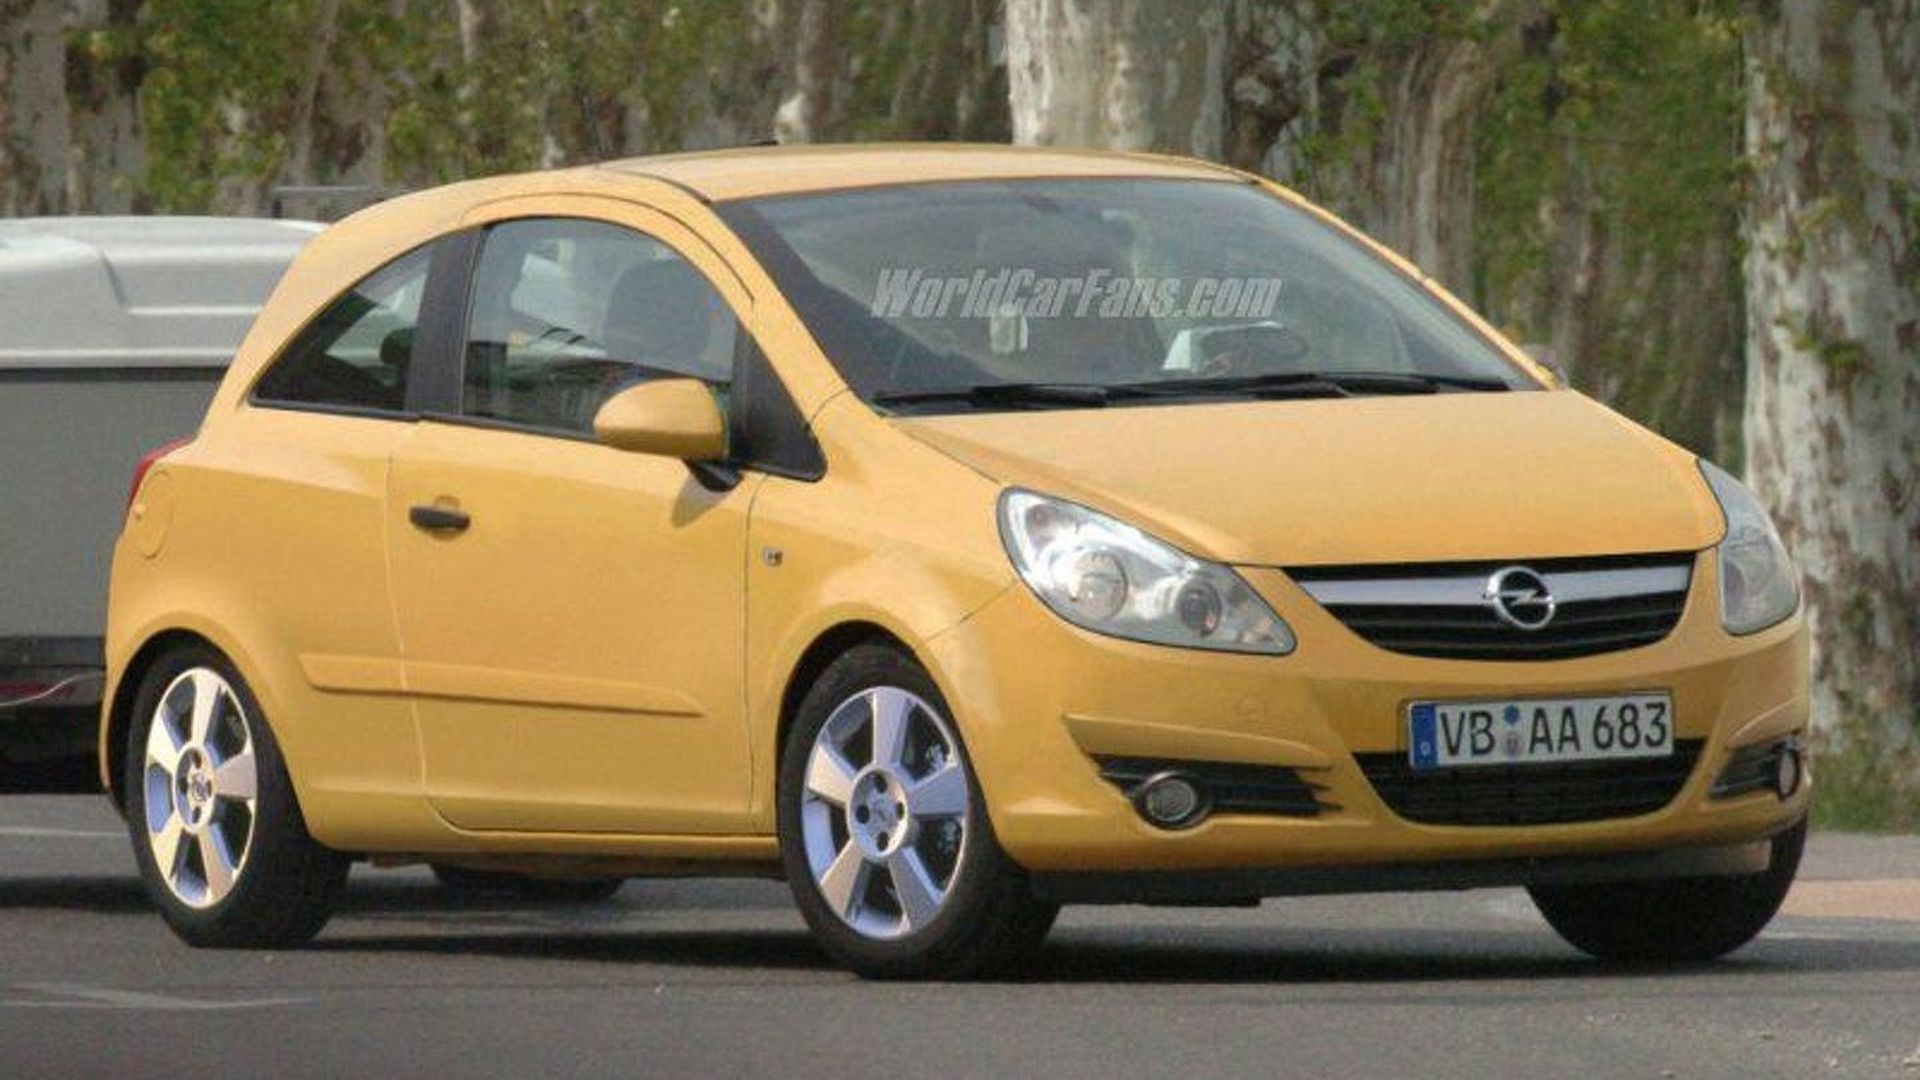 new opel vauxhall corsa 3 door coupe. Black Bedroom Furniture Sets. Home Design Ideas